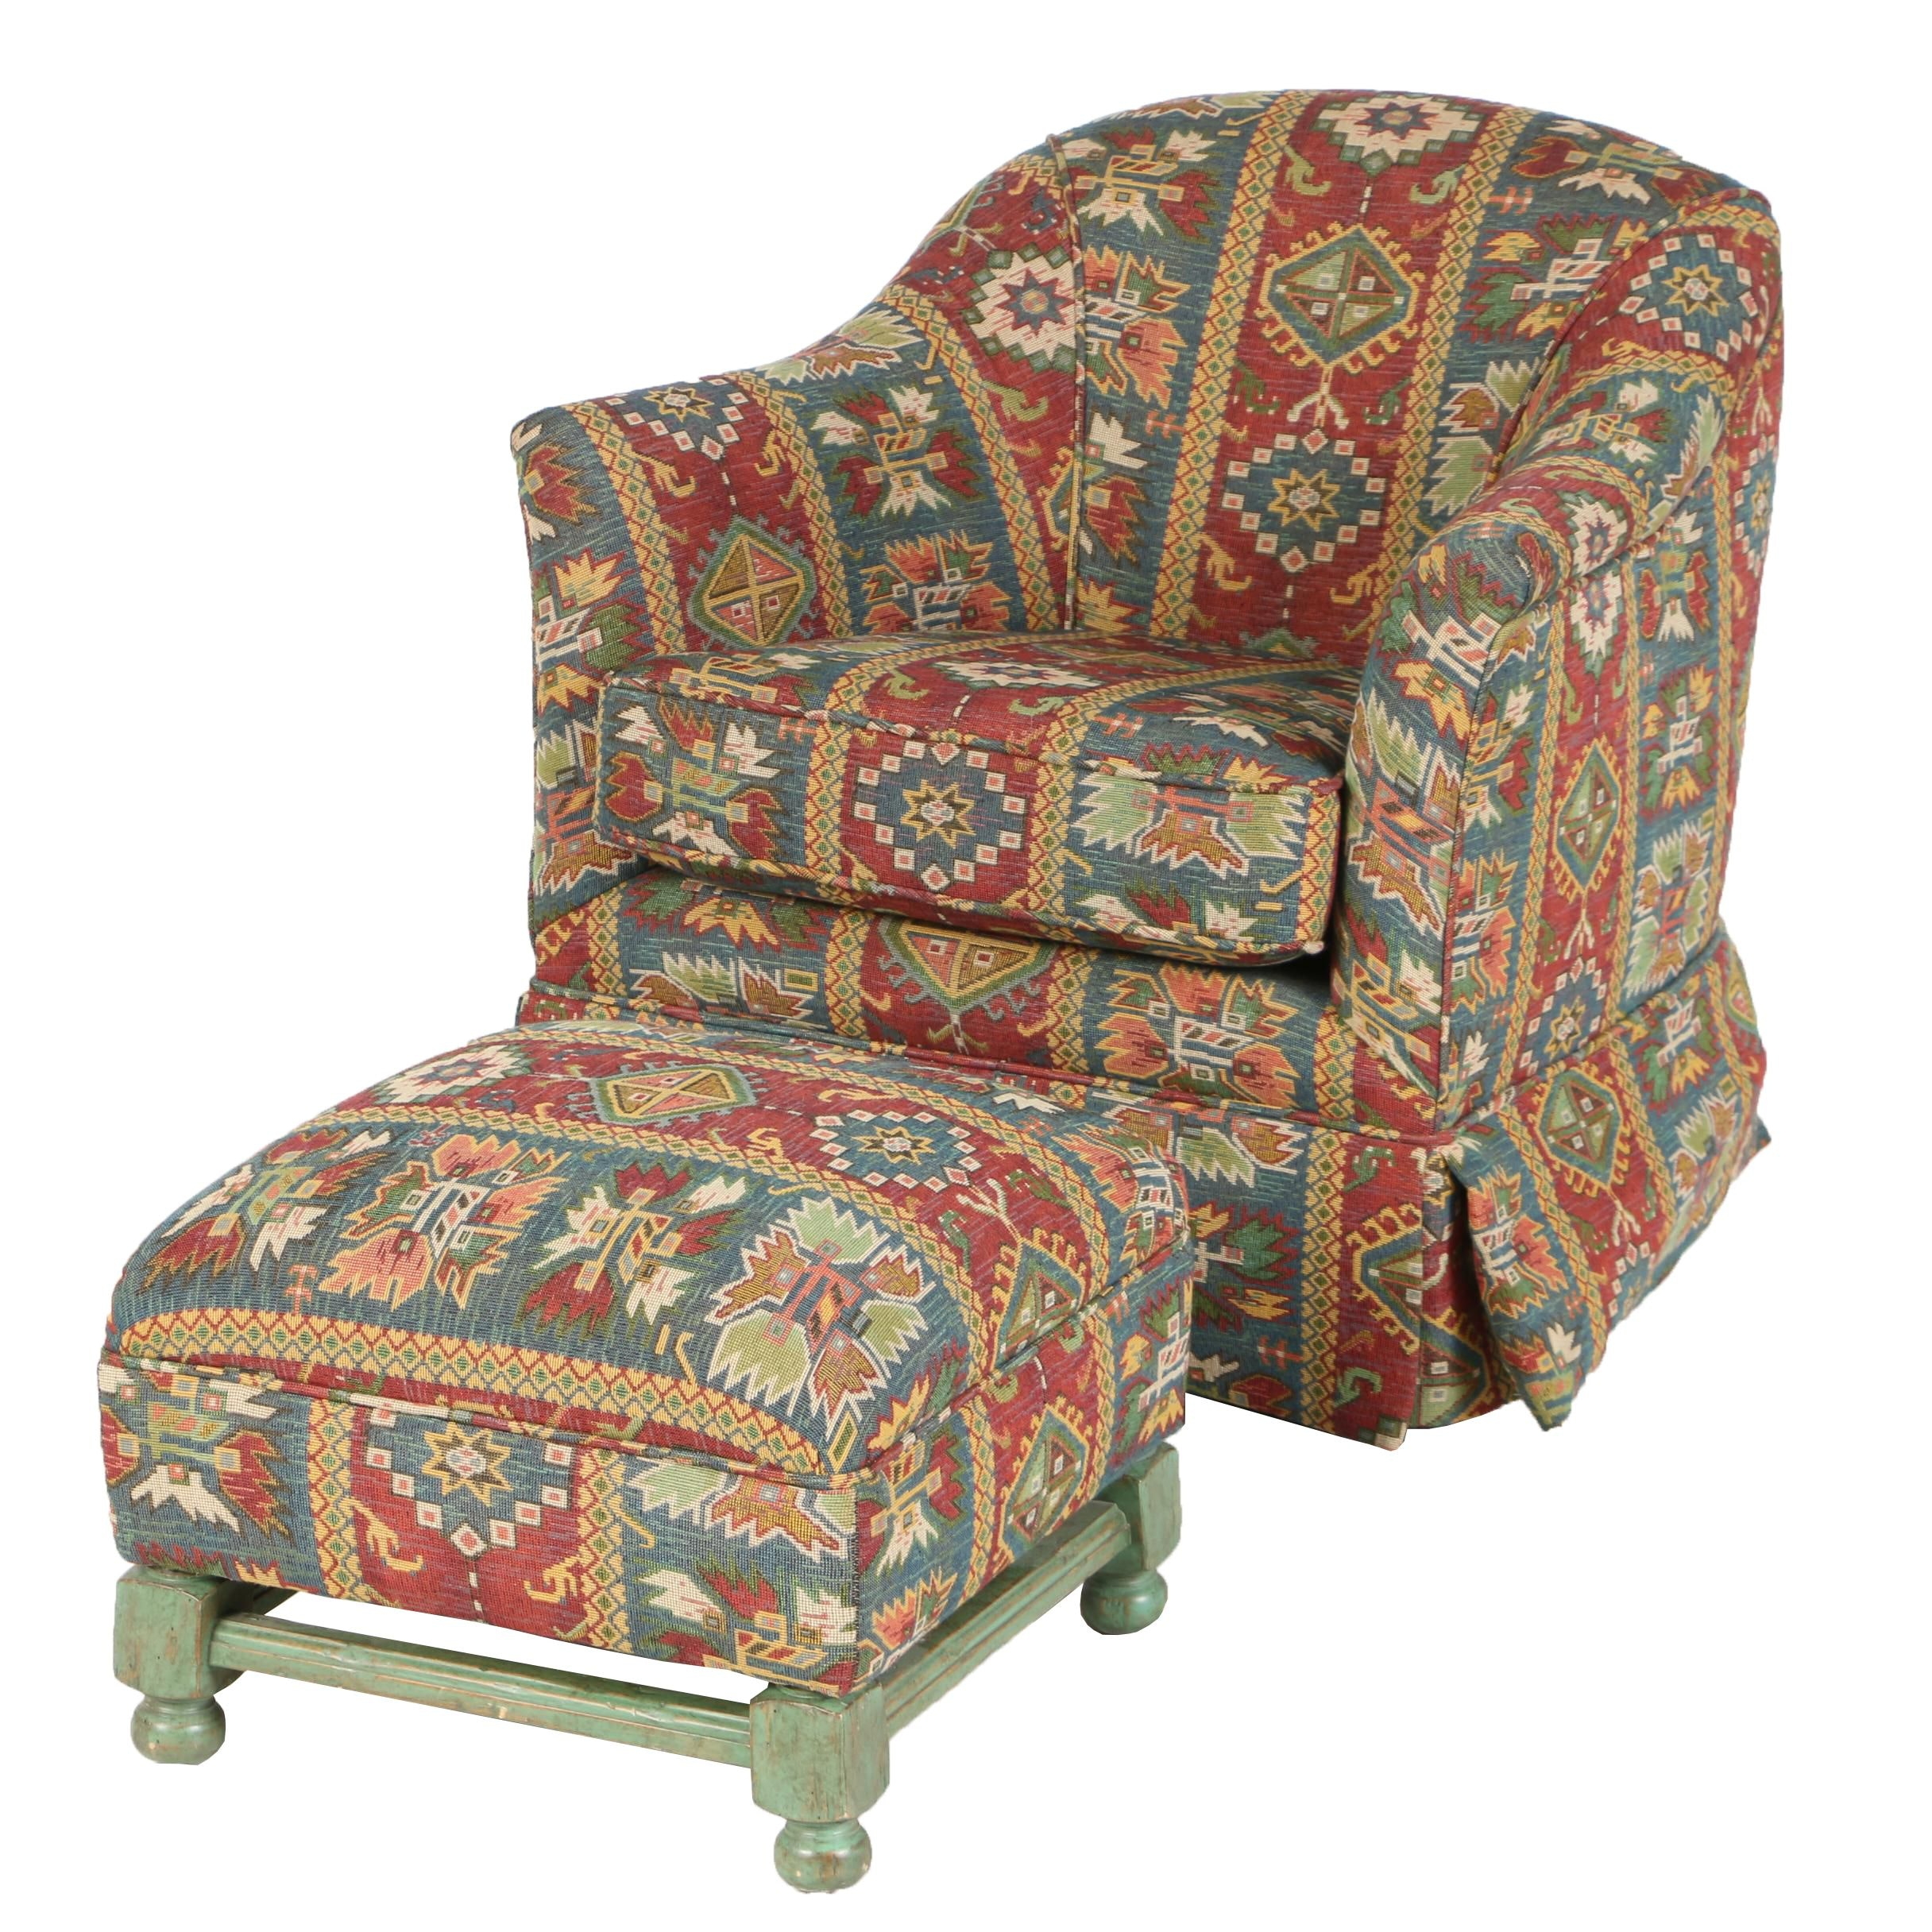 Contemporary Caucasian Kilim-Patterned Swivel Armchair with Ottoman